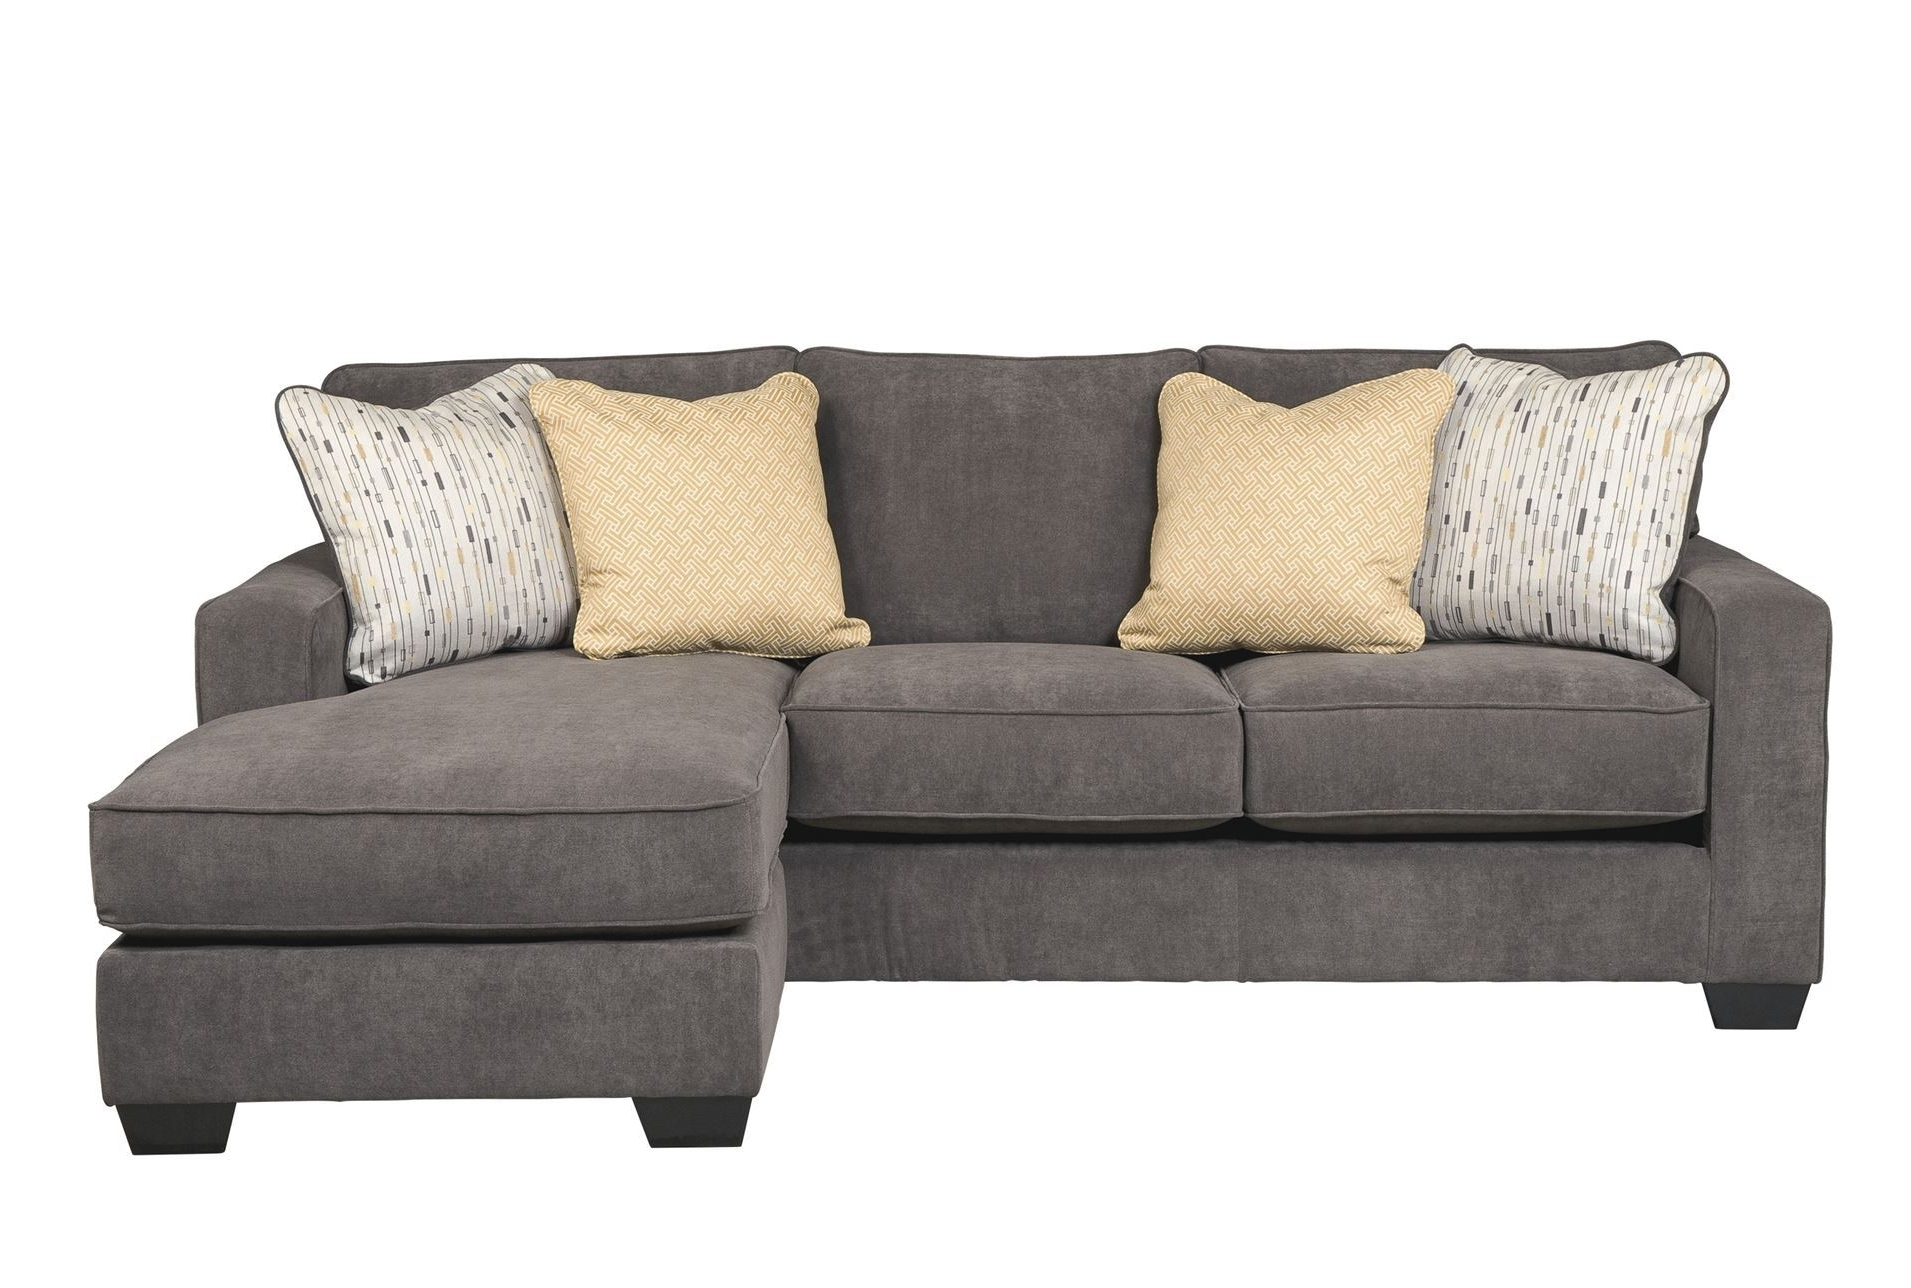 Sofa With Chaise Helpformycredit Regarding Chaise Sofa Covers (View 11 of 12)